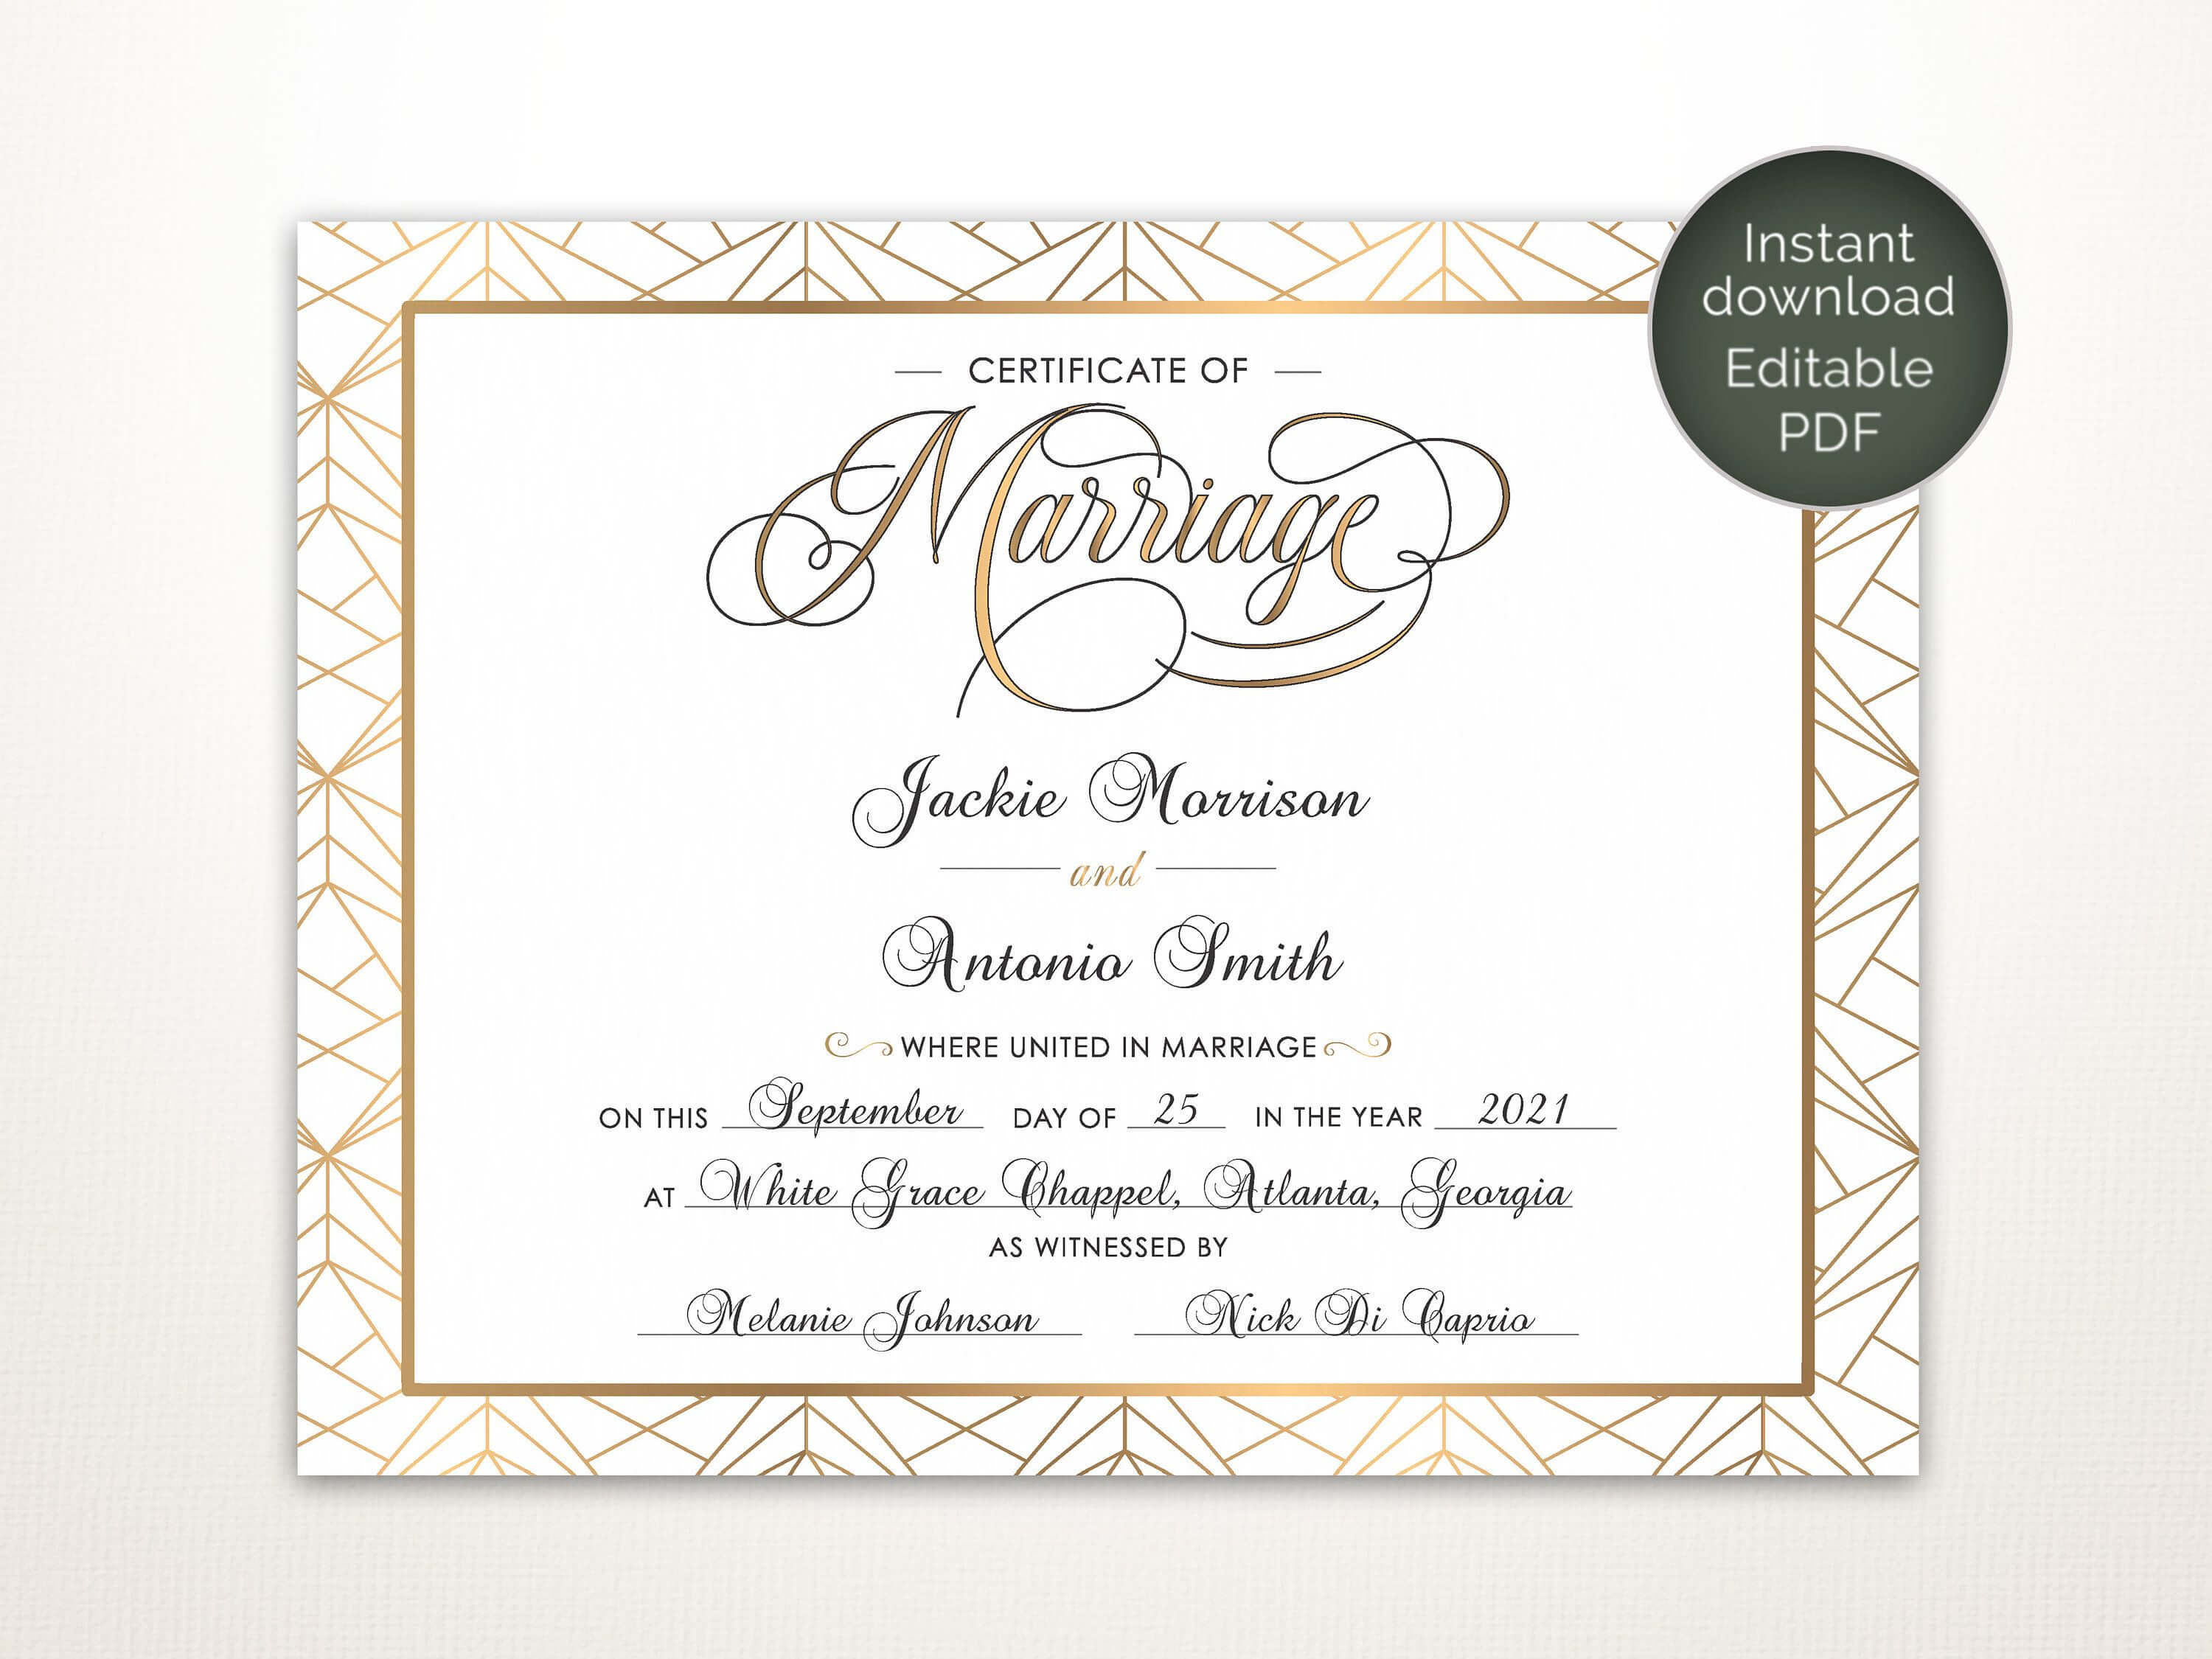 Modern Wedding Certificate, Printable Certificate Of pertaining to Certificate Of Marriage Template